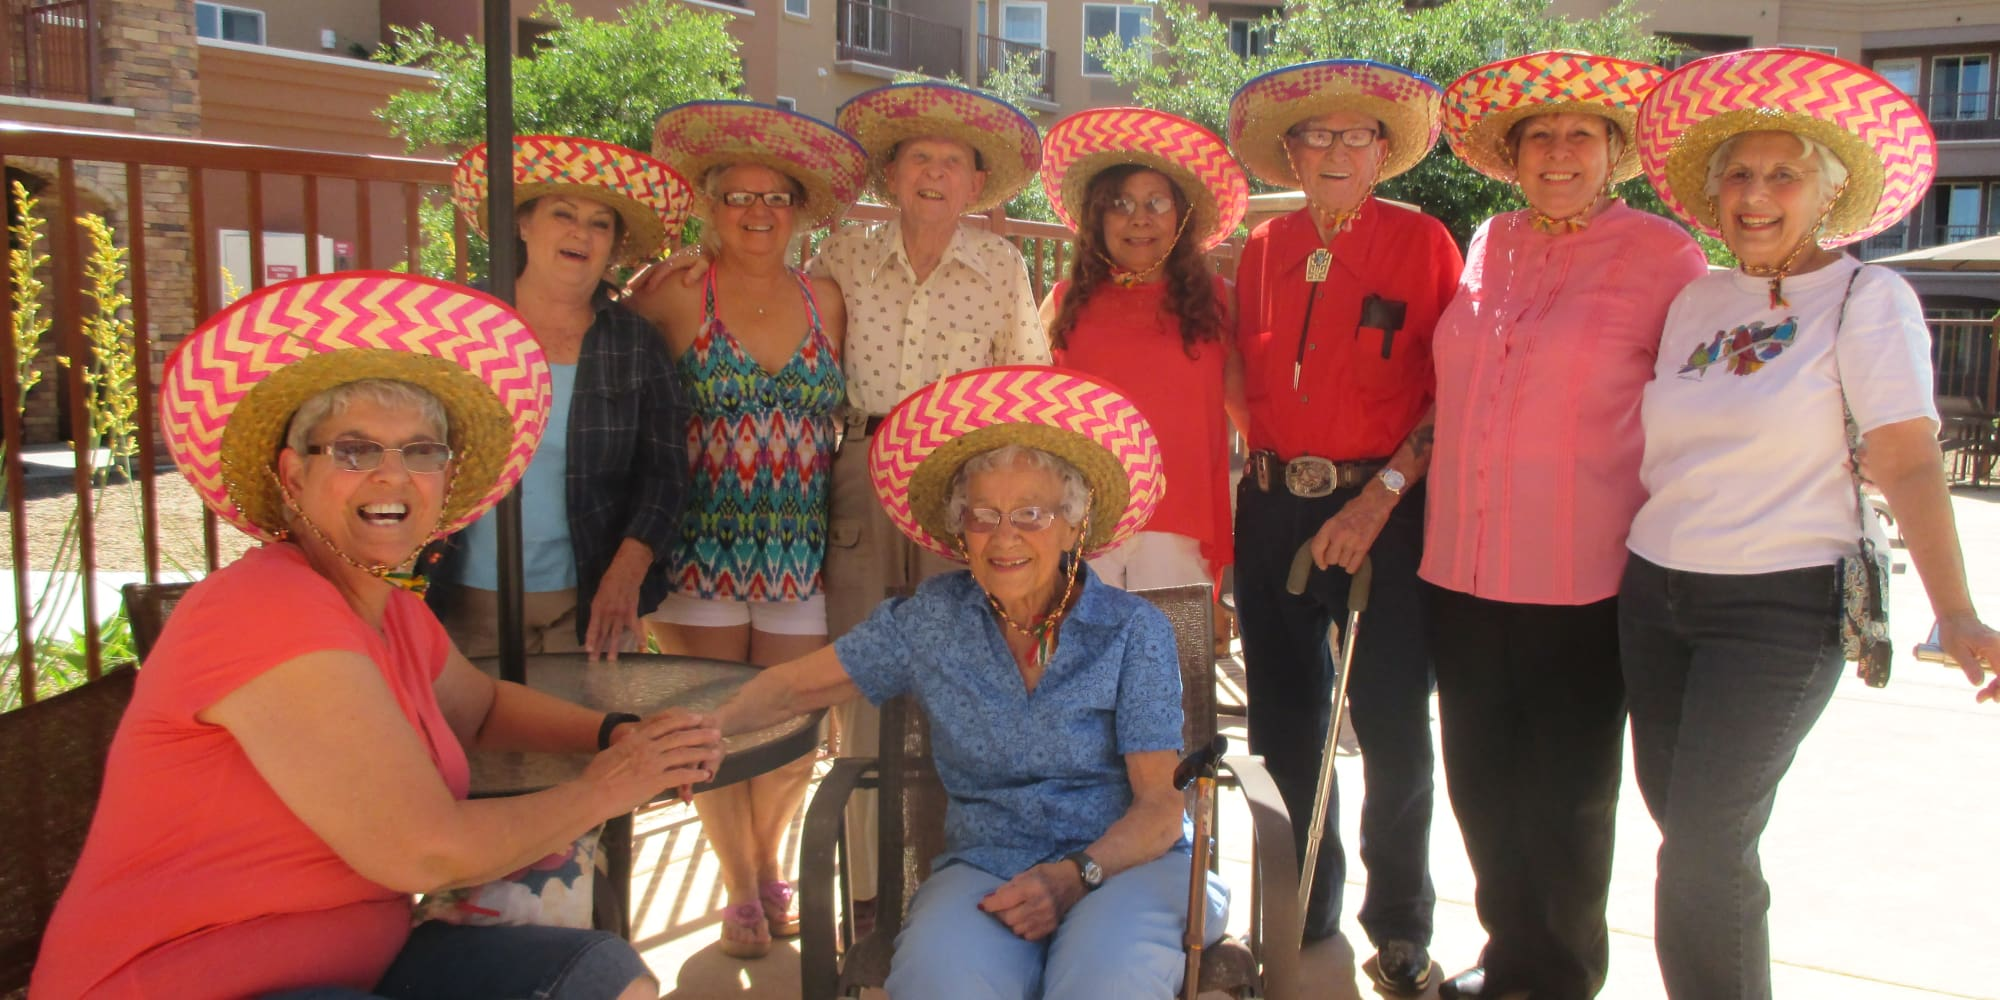 Residents wearing sombreros at Mountain View Gardens in Sierra Vista, Arizona